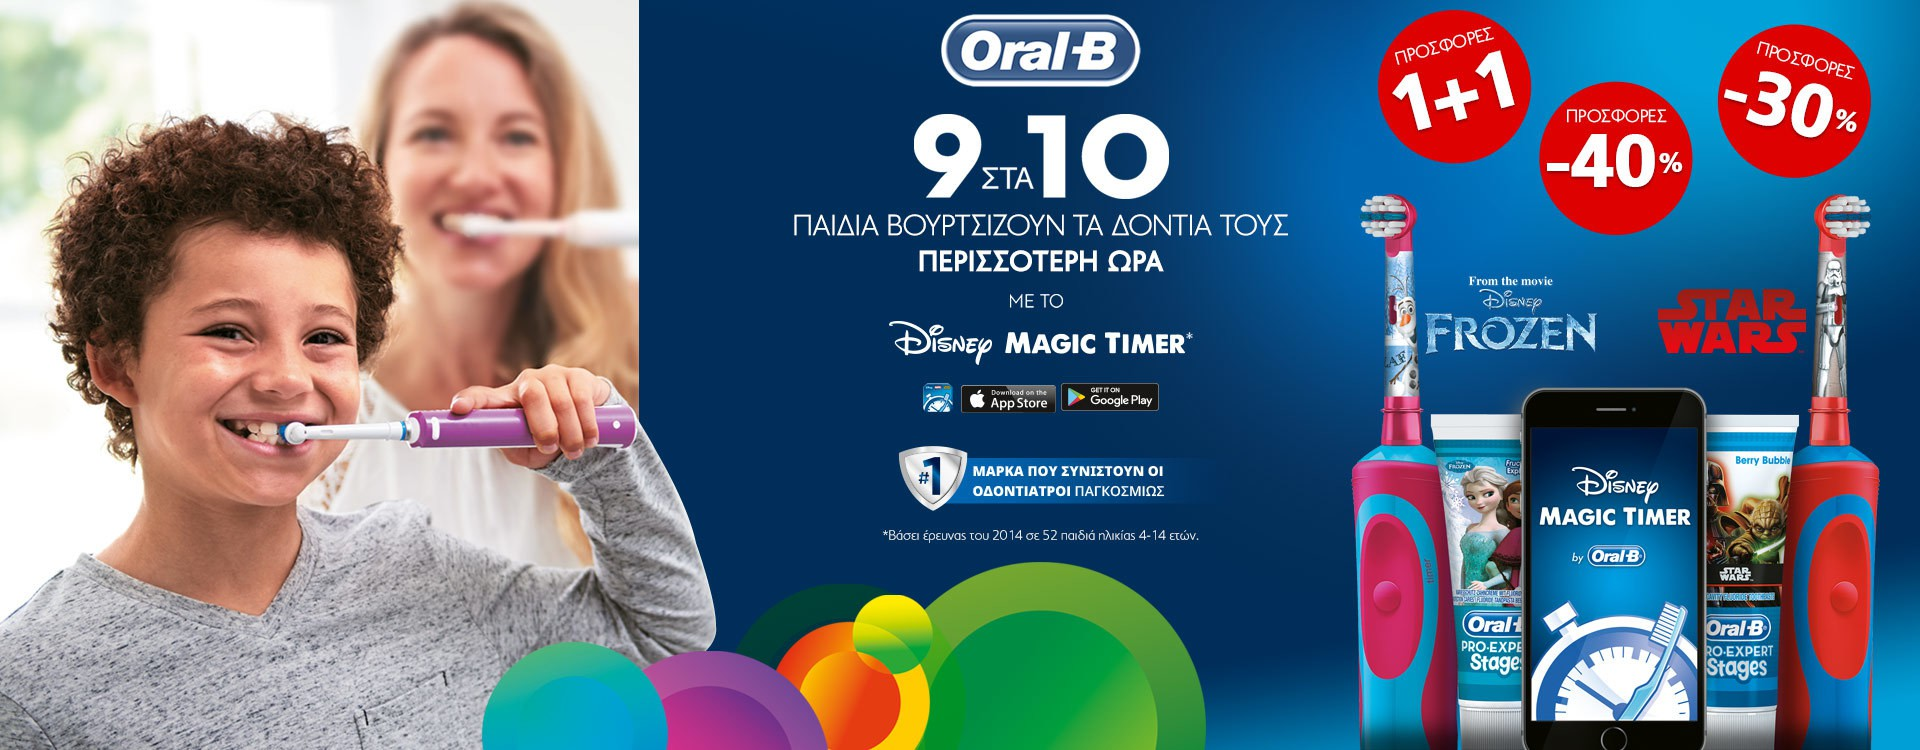 Slider oral b back to school sept18